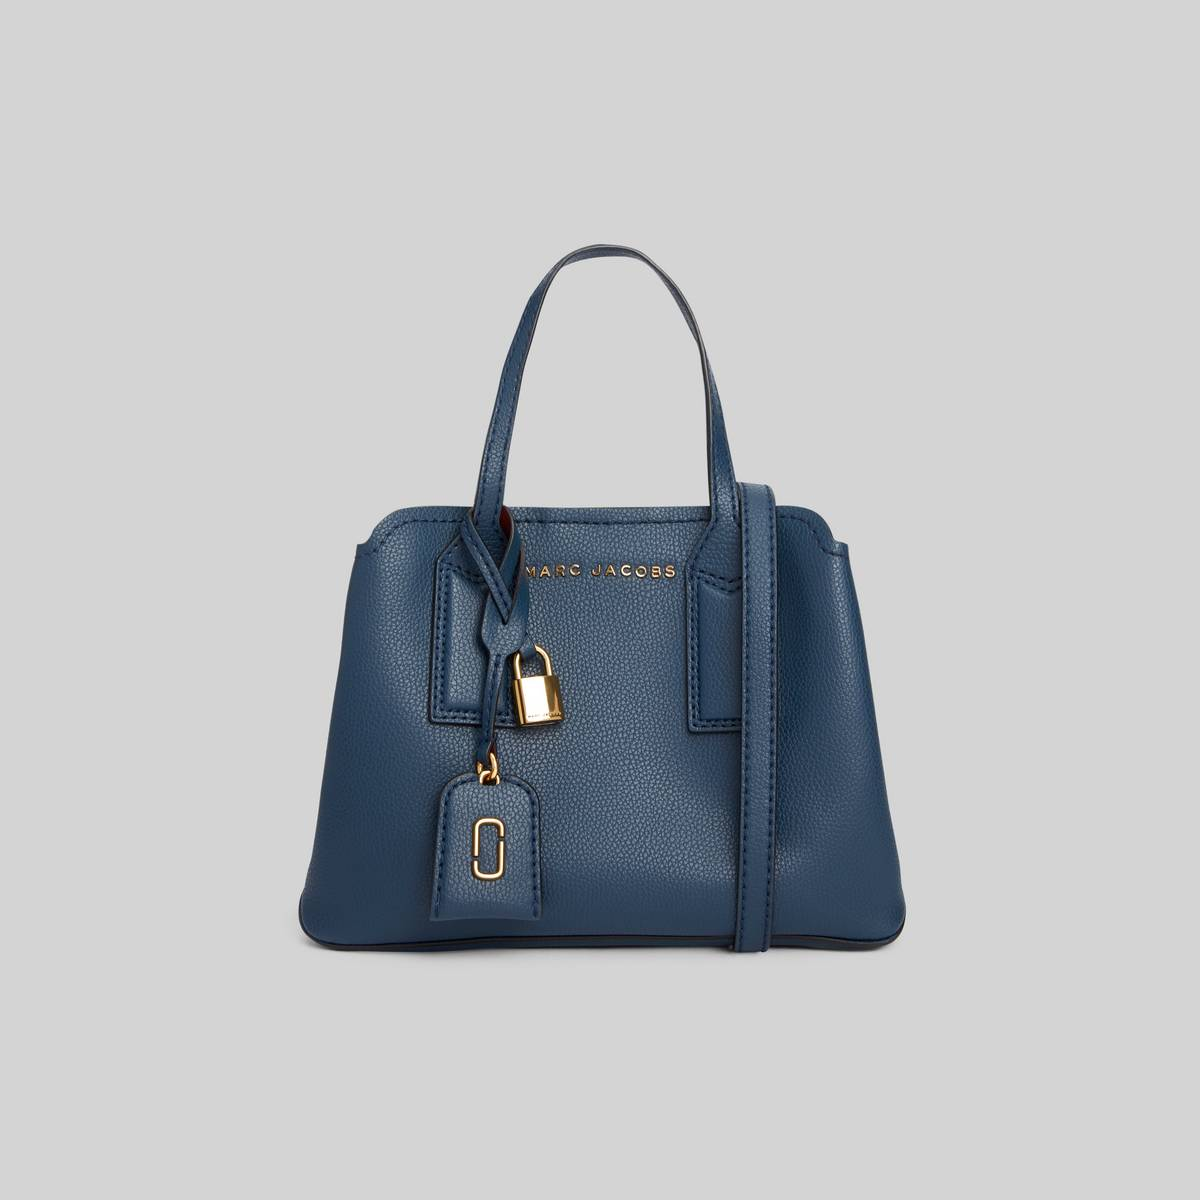 Leather tote with shoulder straps and 3 interior sections. | MARC JACOBS Women\\'s The Editor Crossbody Bag in Blue Sea